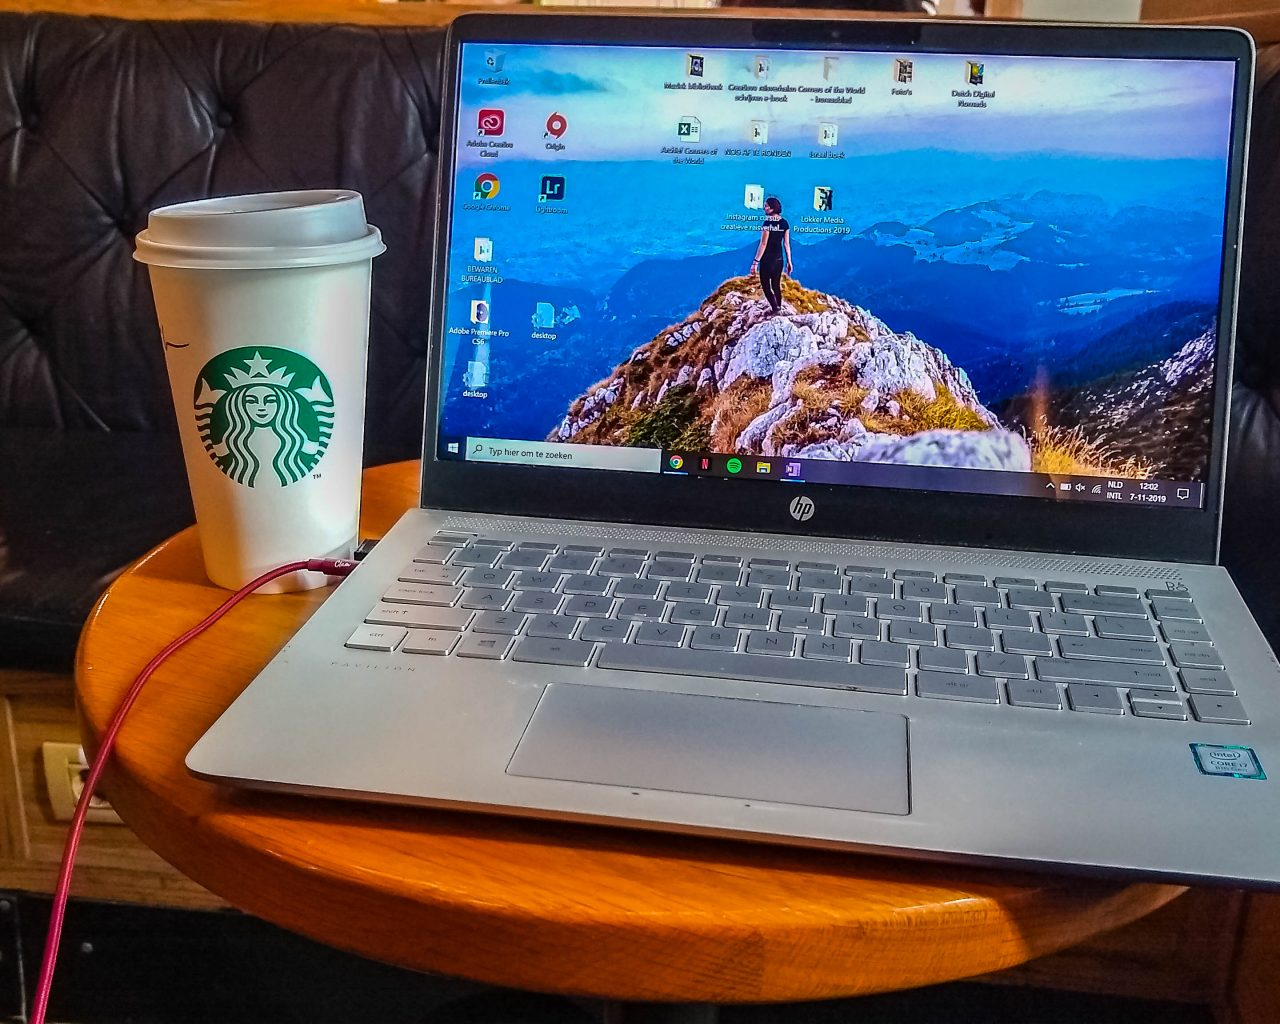 Laptop-en-starbucks-beker-Starbucks-Unirii